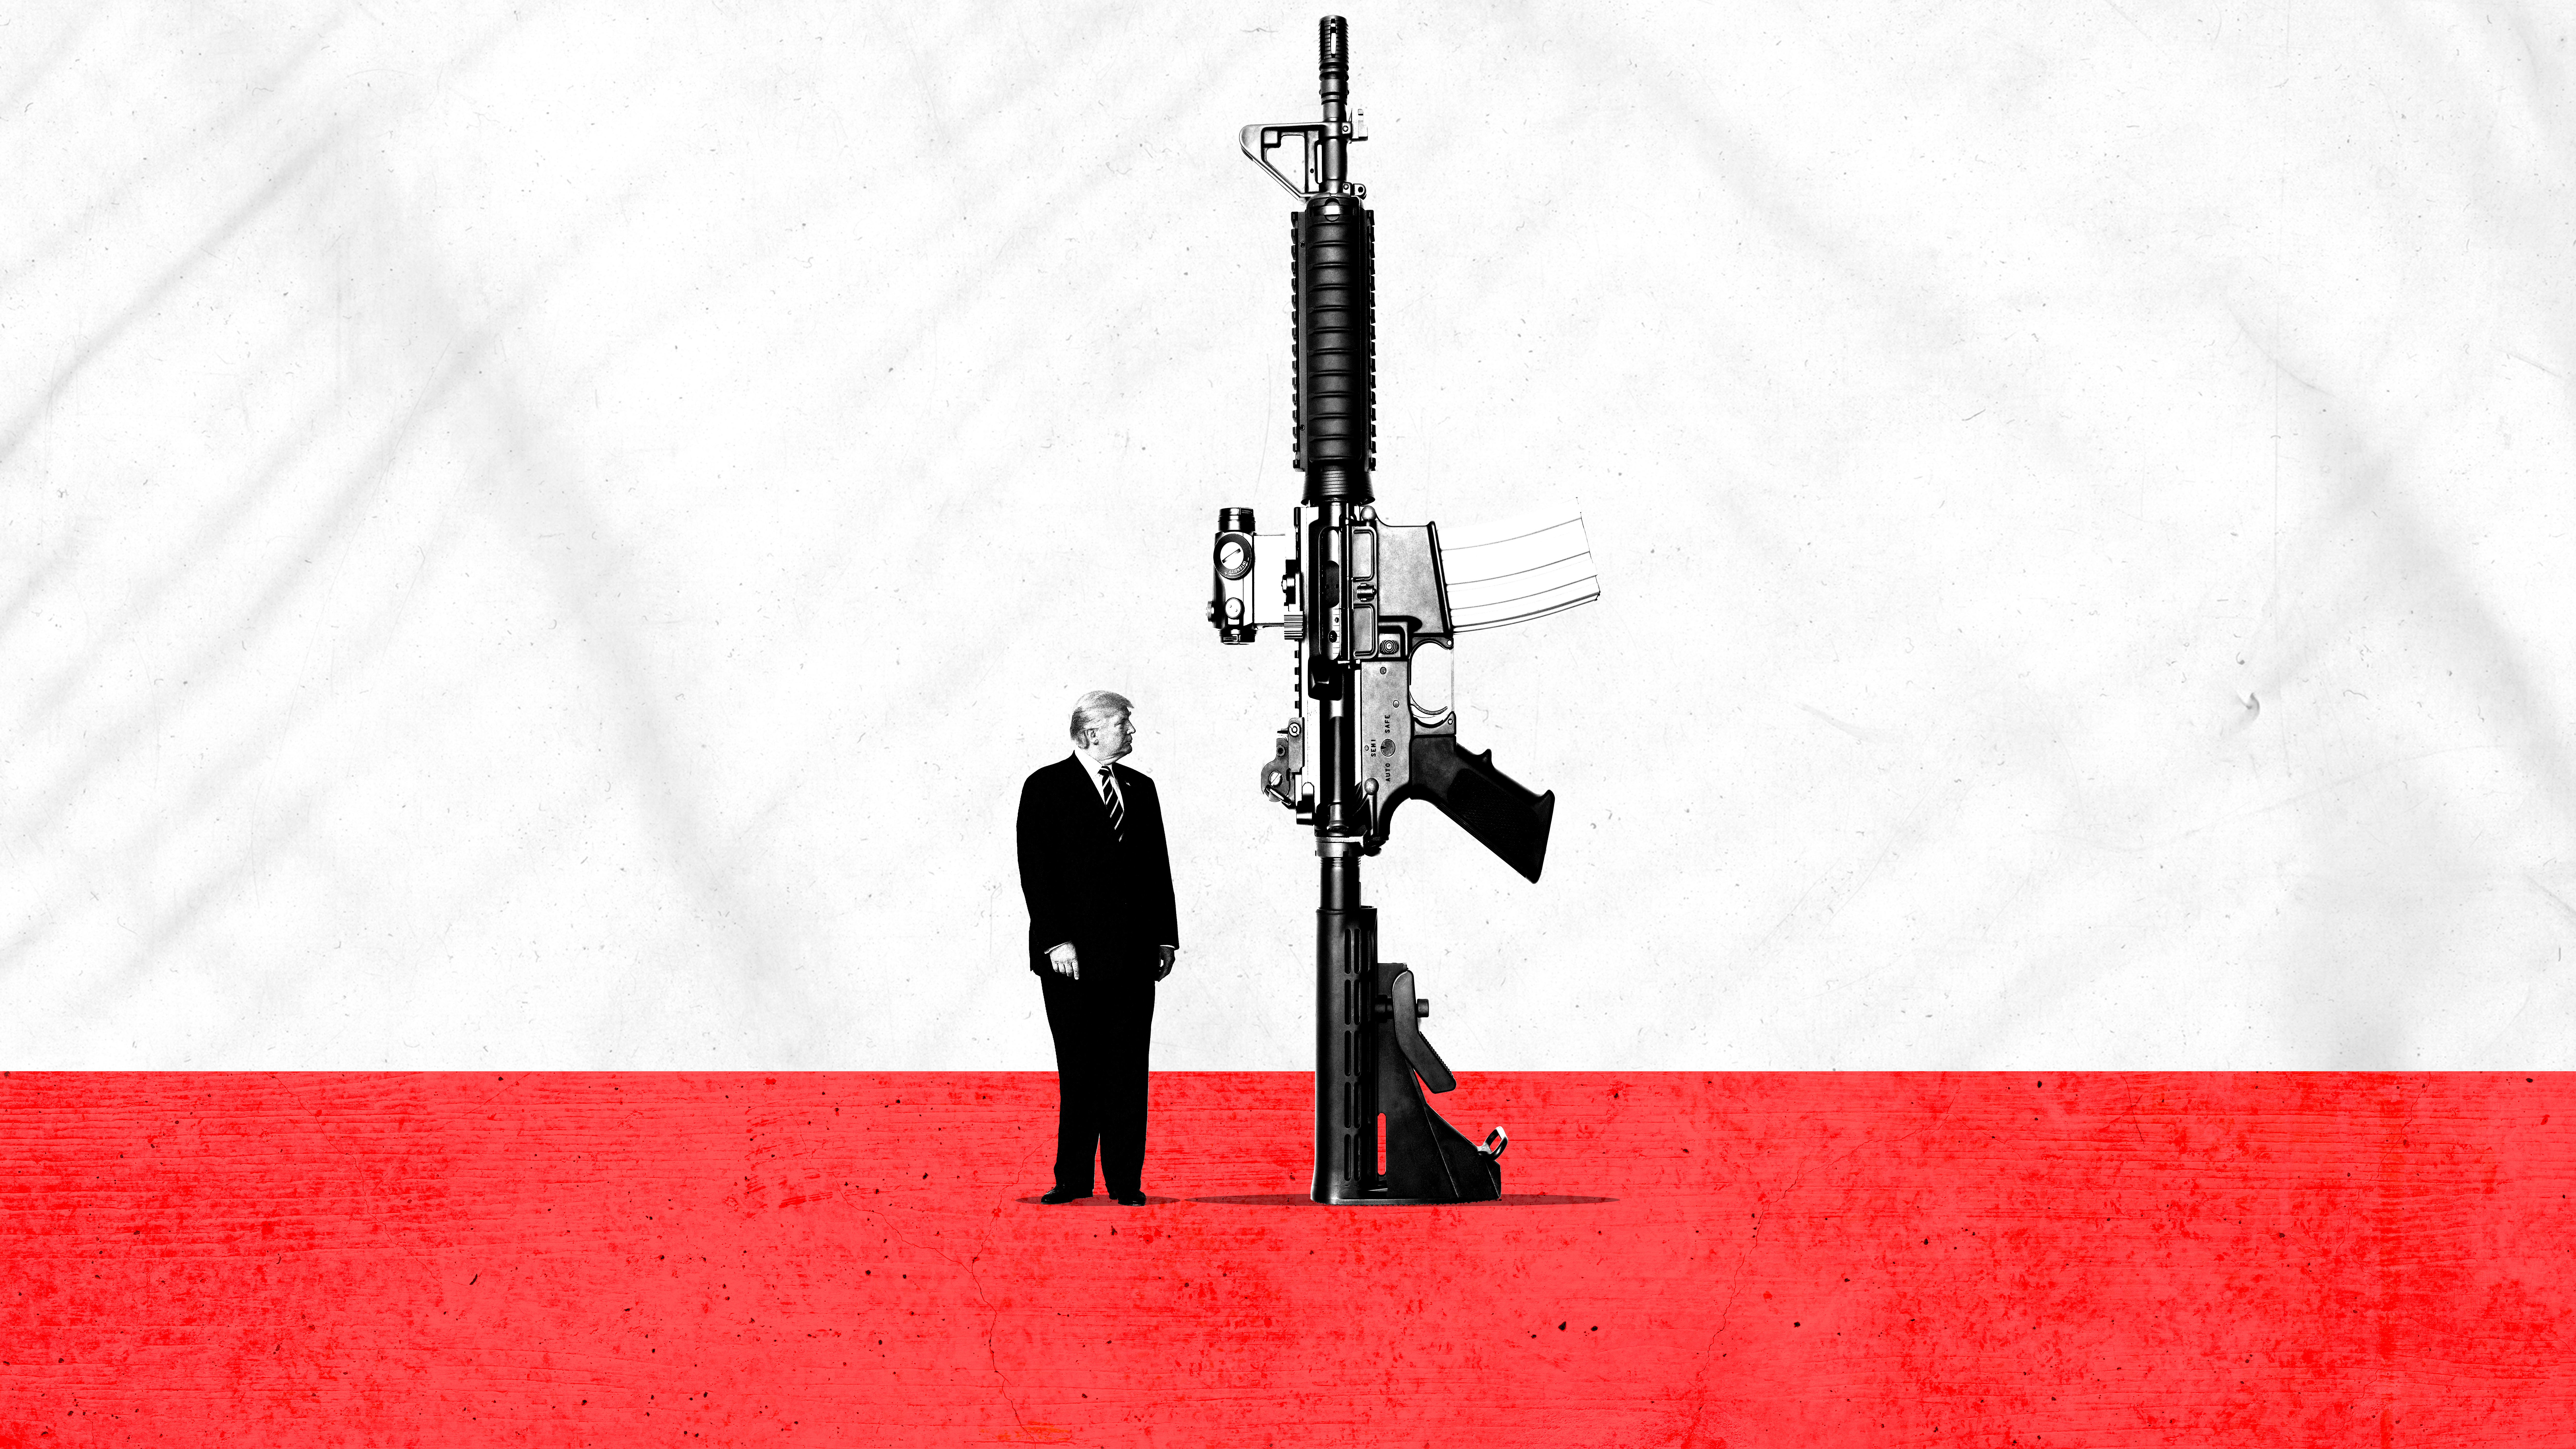 Donald Dossier: The Way of the Gun